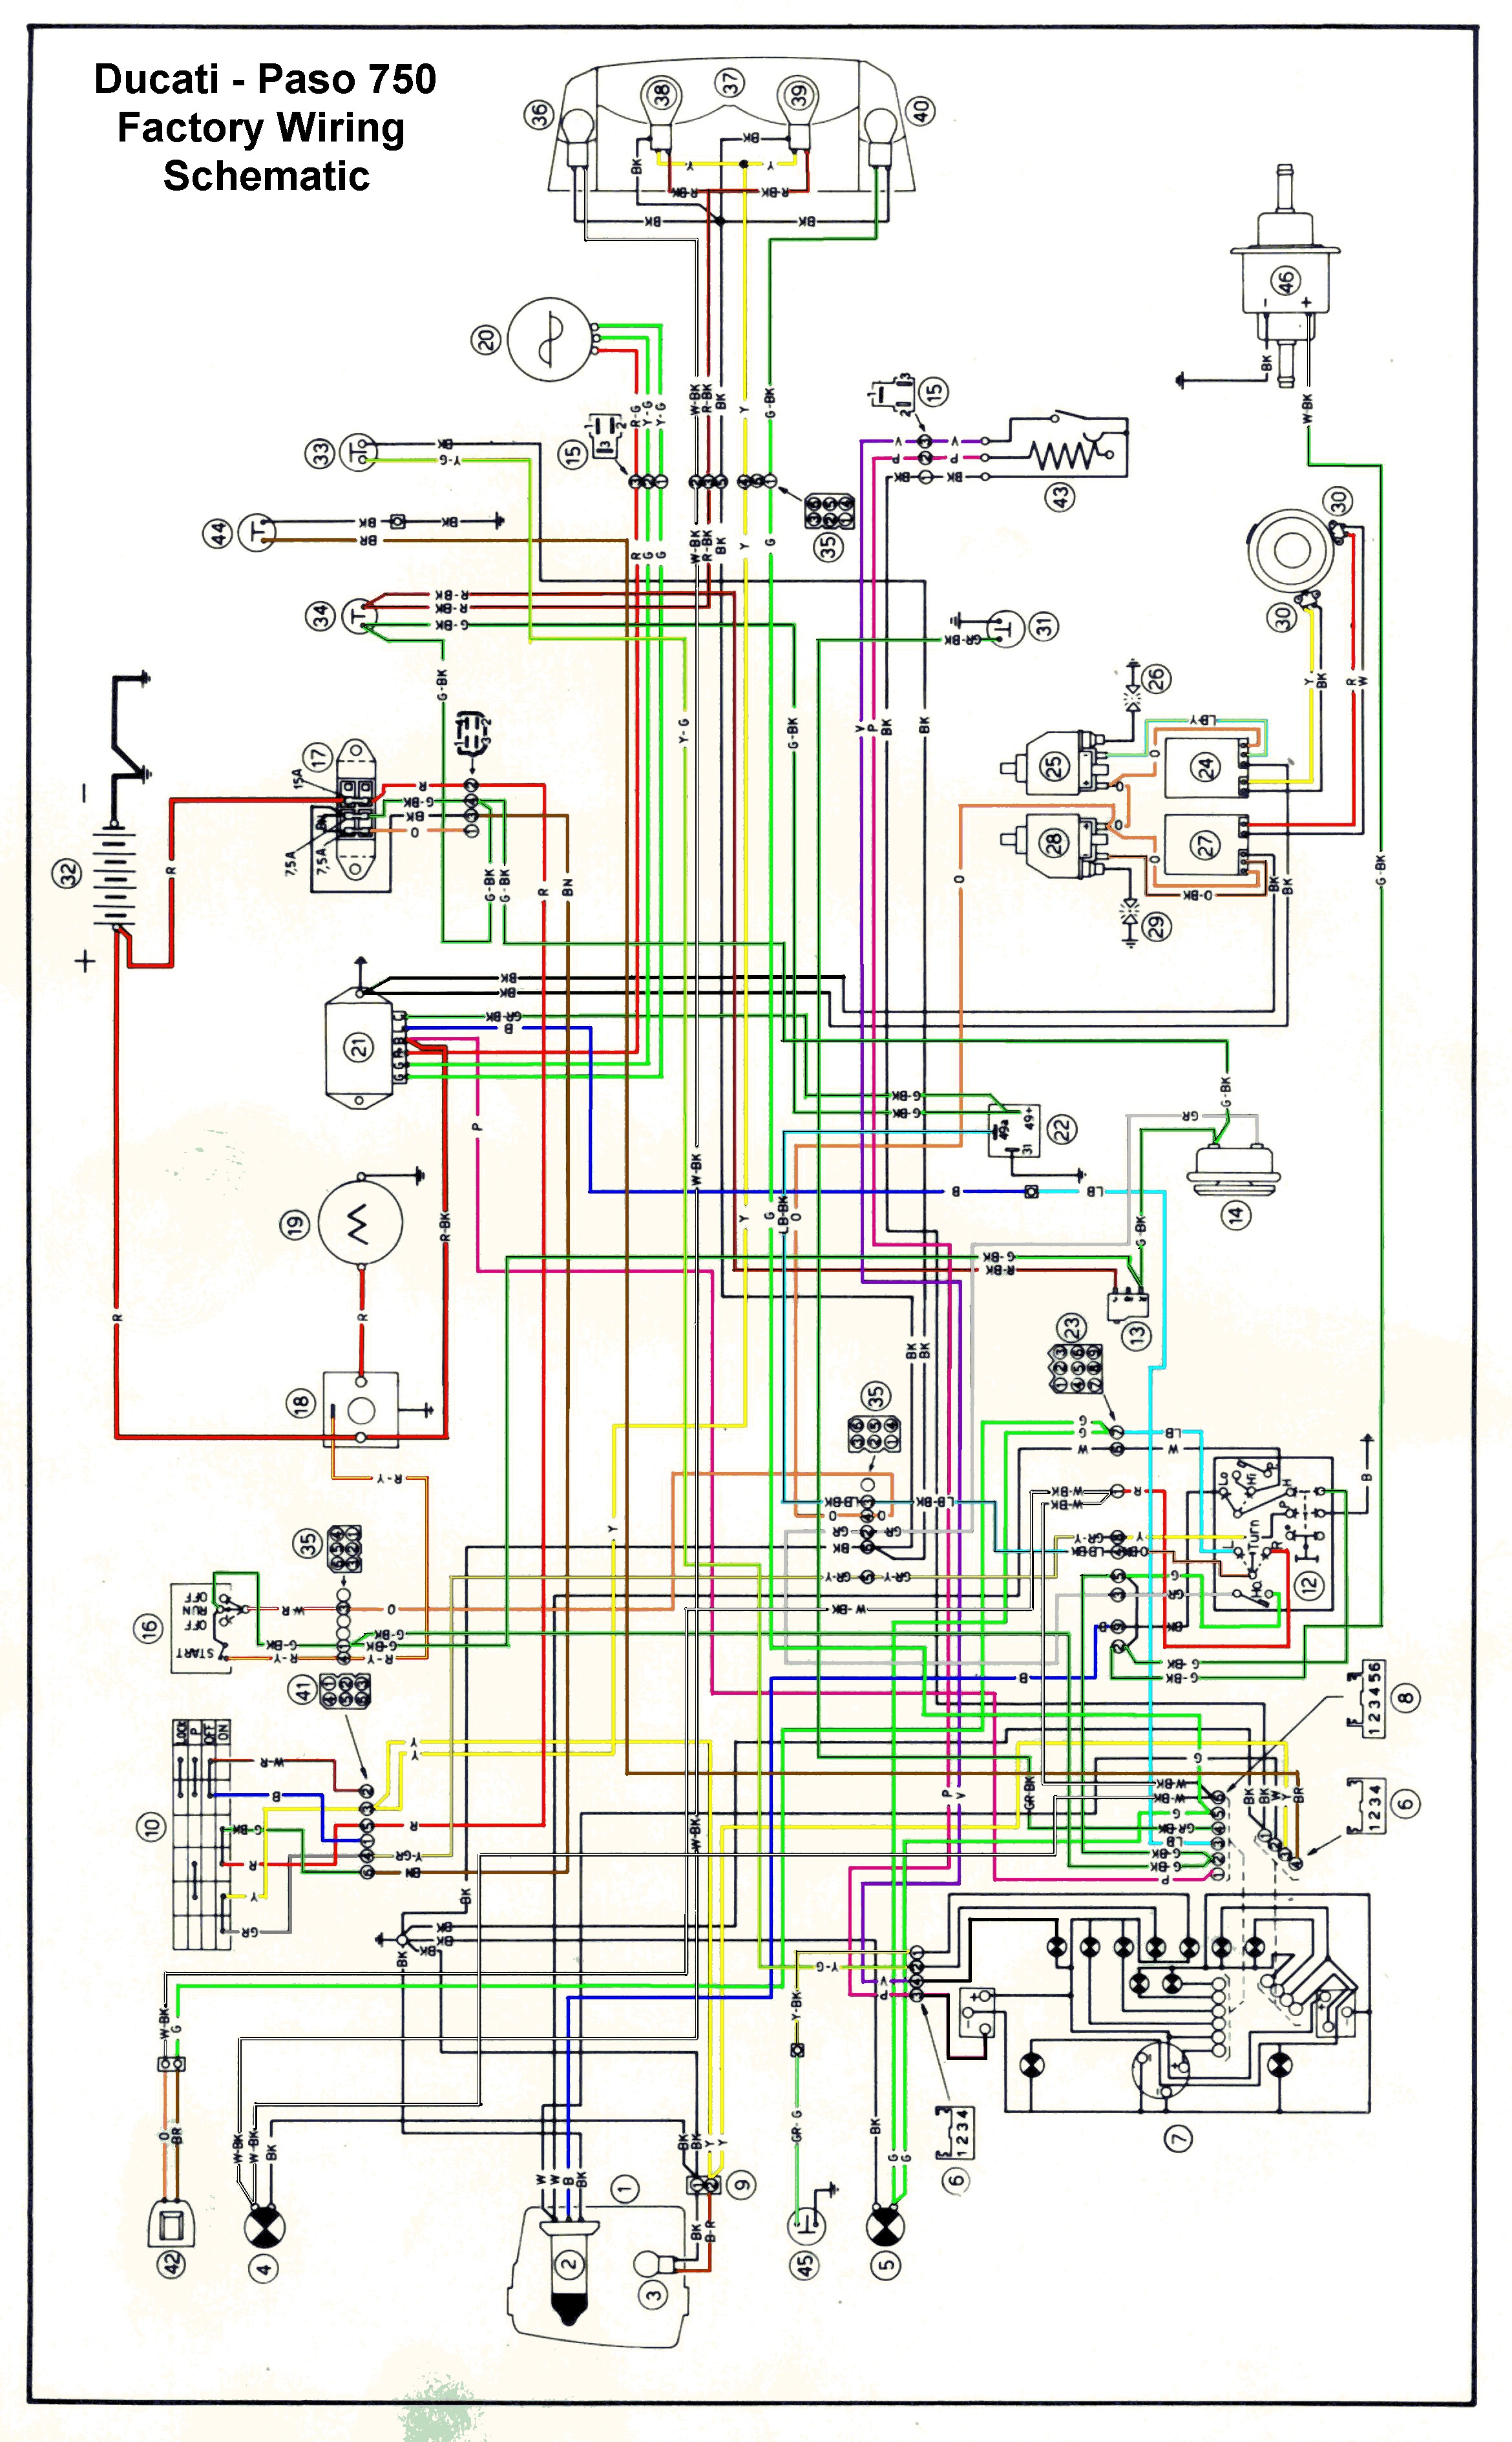 2013 Ducati Monster 696 Wiring Diagram 2007 Chevy Aveo Fuel Filter Location Bege Wiring Diagram